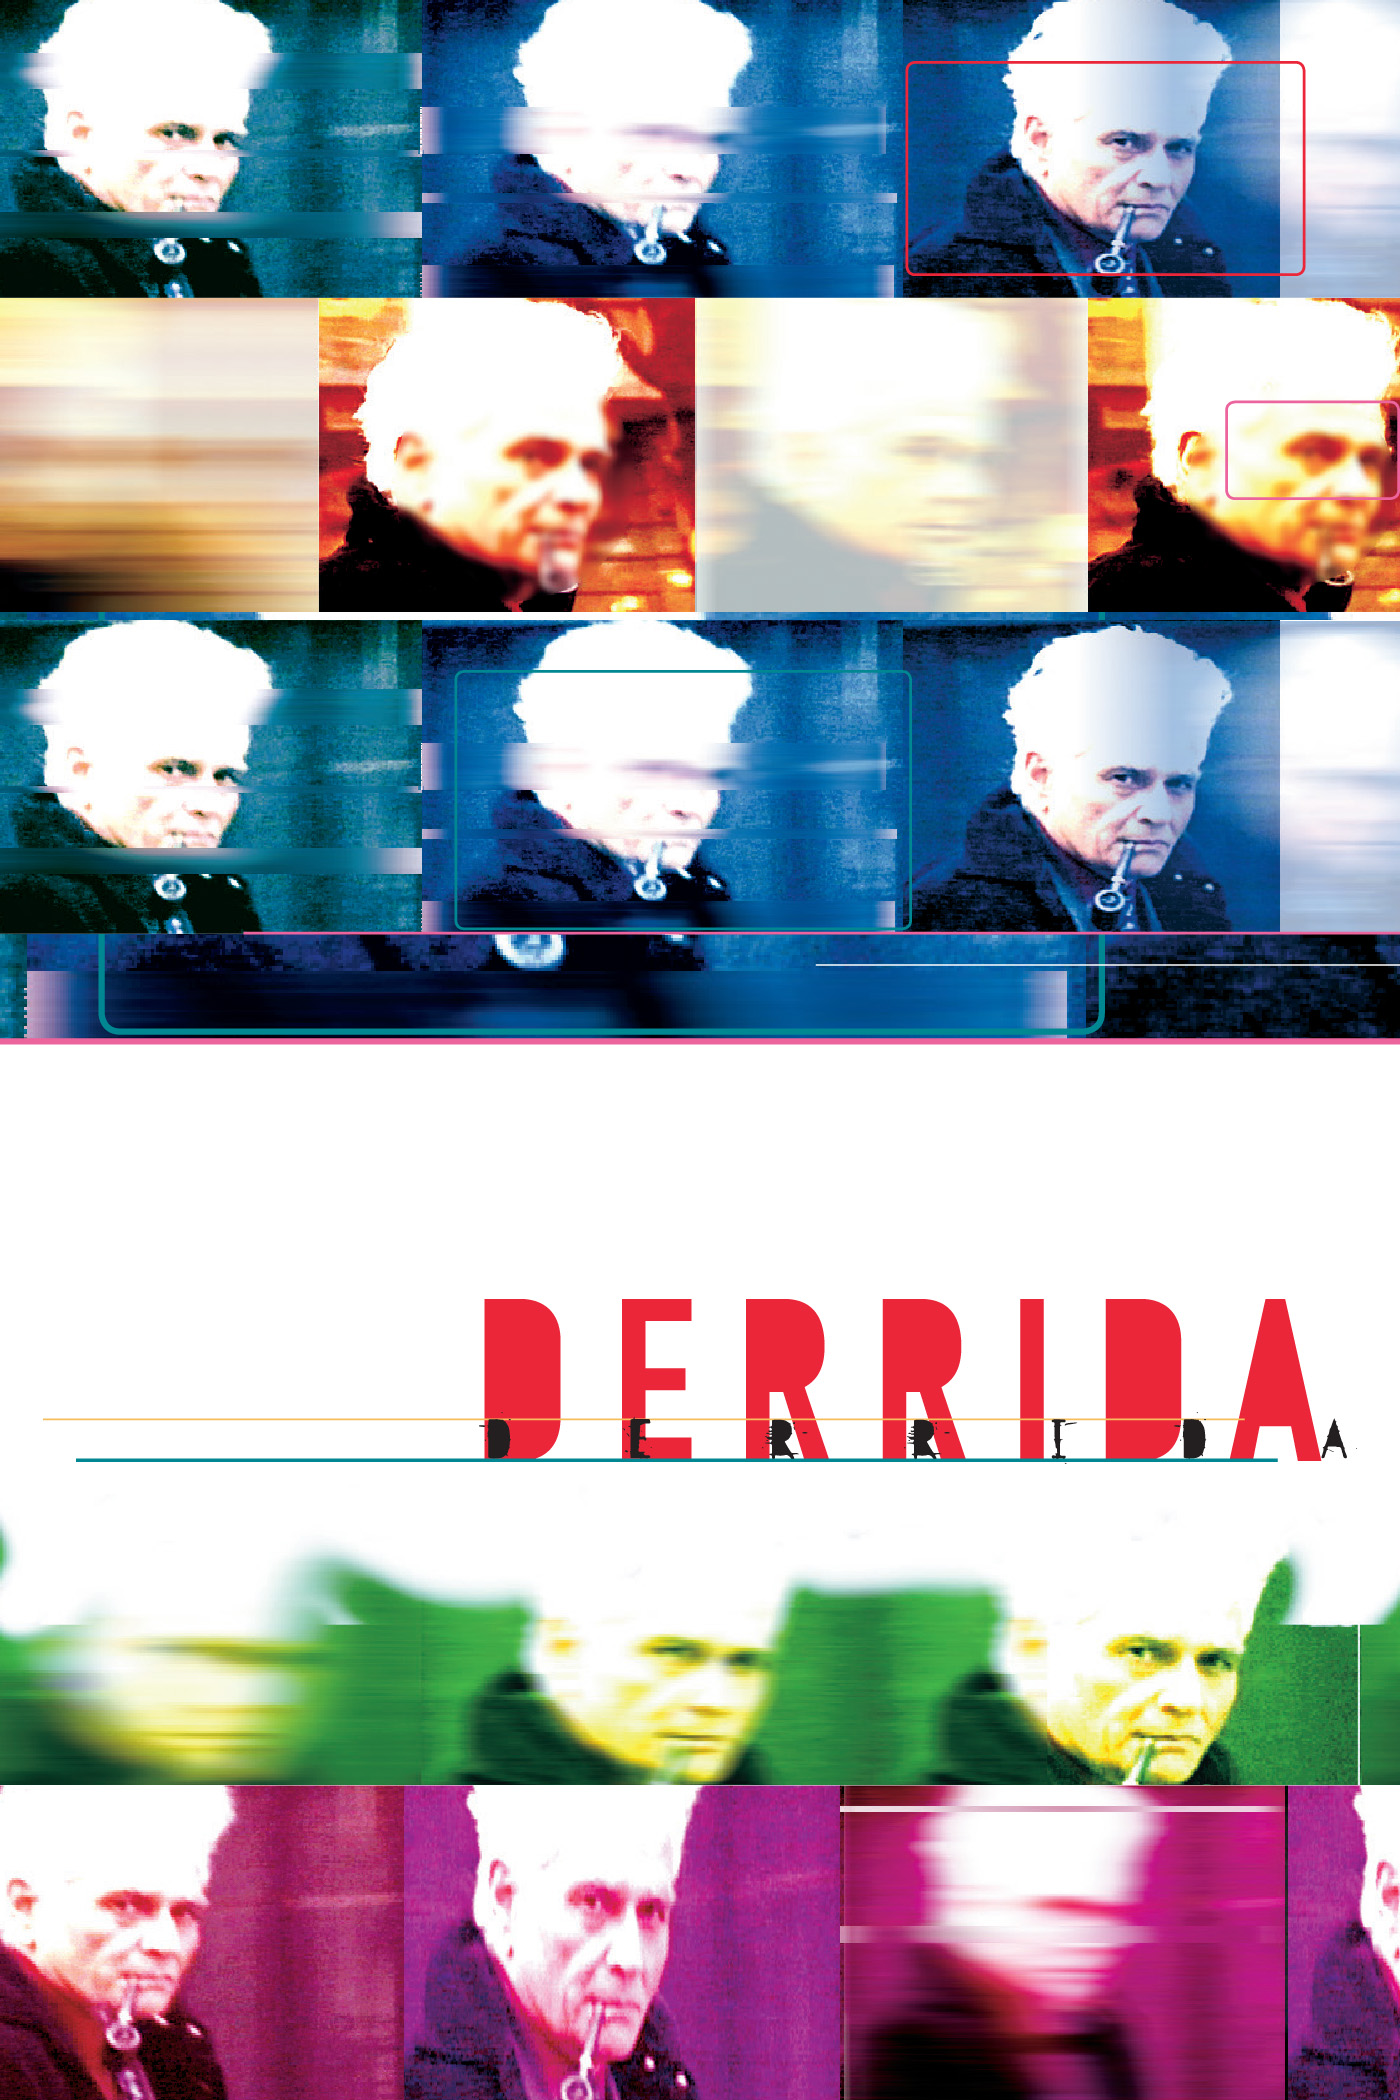 an analysis of the film derrida by kirby dick and amy ziering kofman Get this from a library derrida : a film by kirby dick and amy ziering kofman [kirby dick amy ziering kofman jacques derrida ry ichi sakamoto jane doe films zeitgeist films] -- an odd portrait of jacques derrida, one of the most polemical and influential theorists of the end of the.